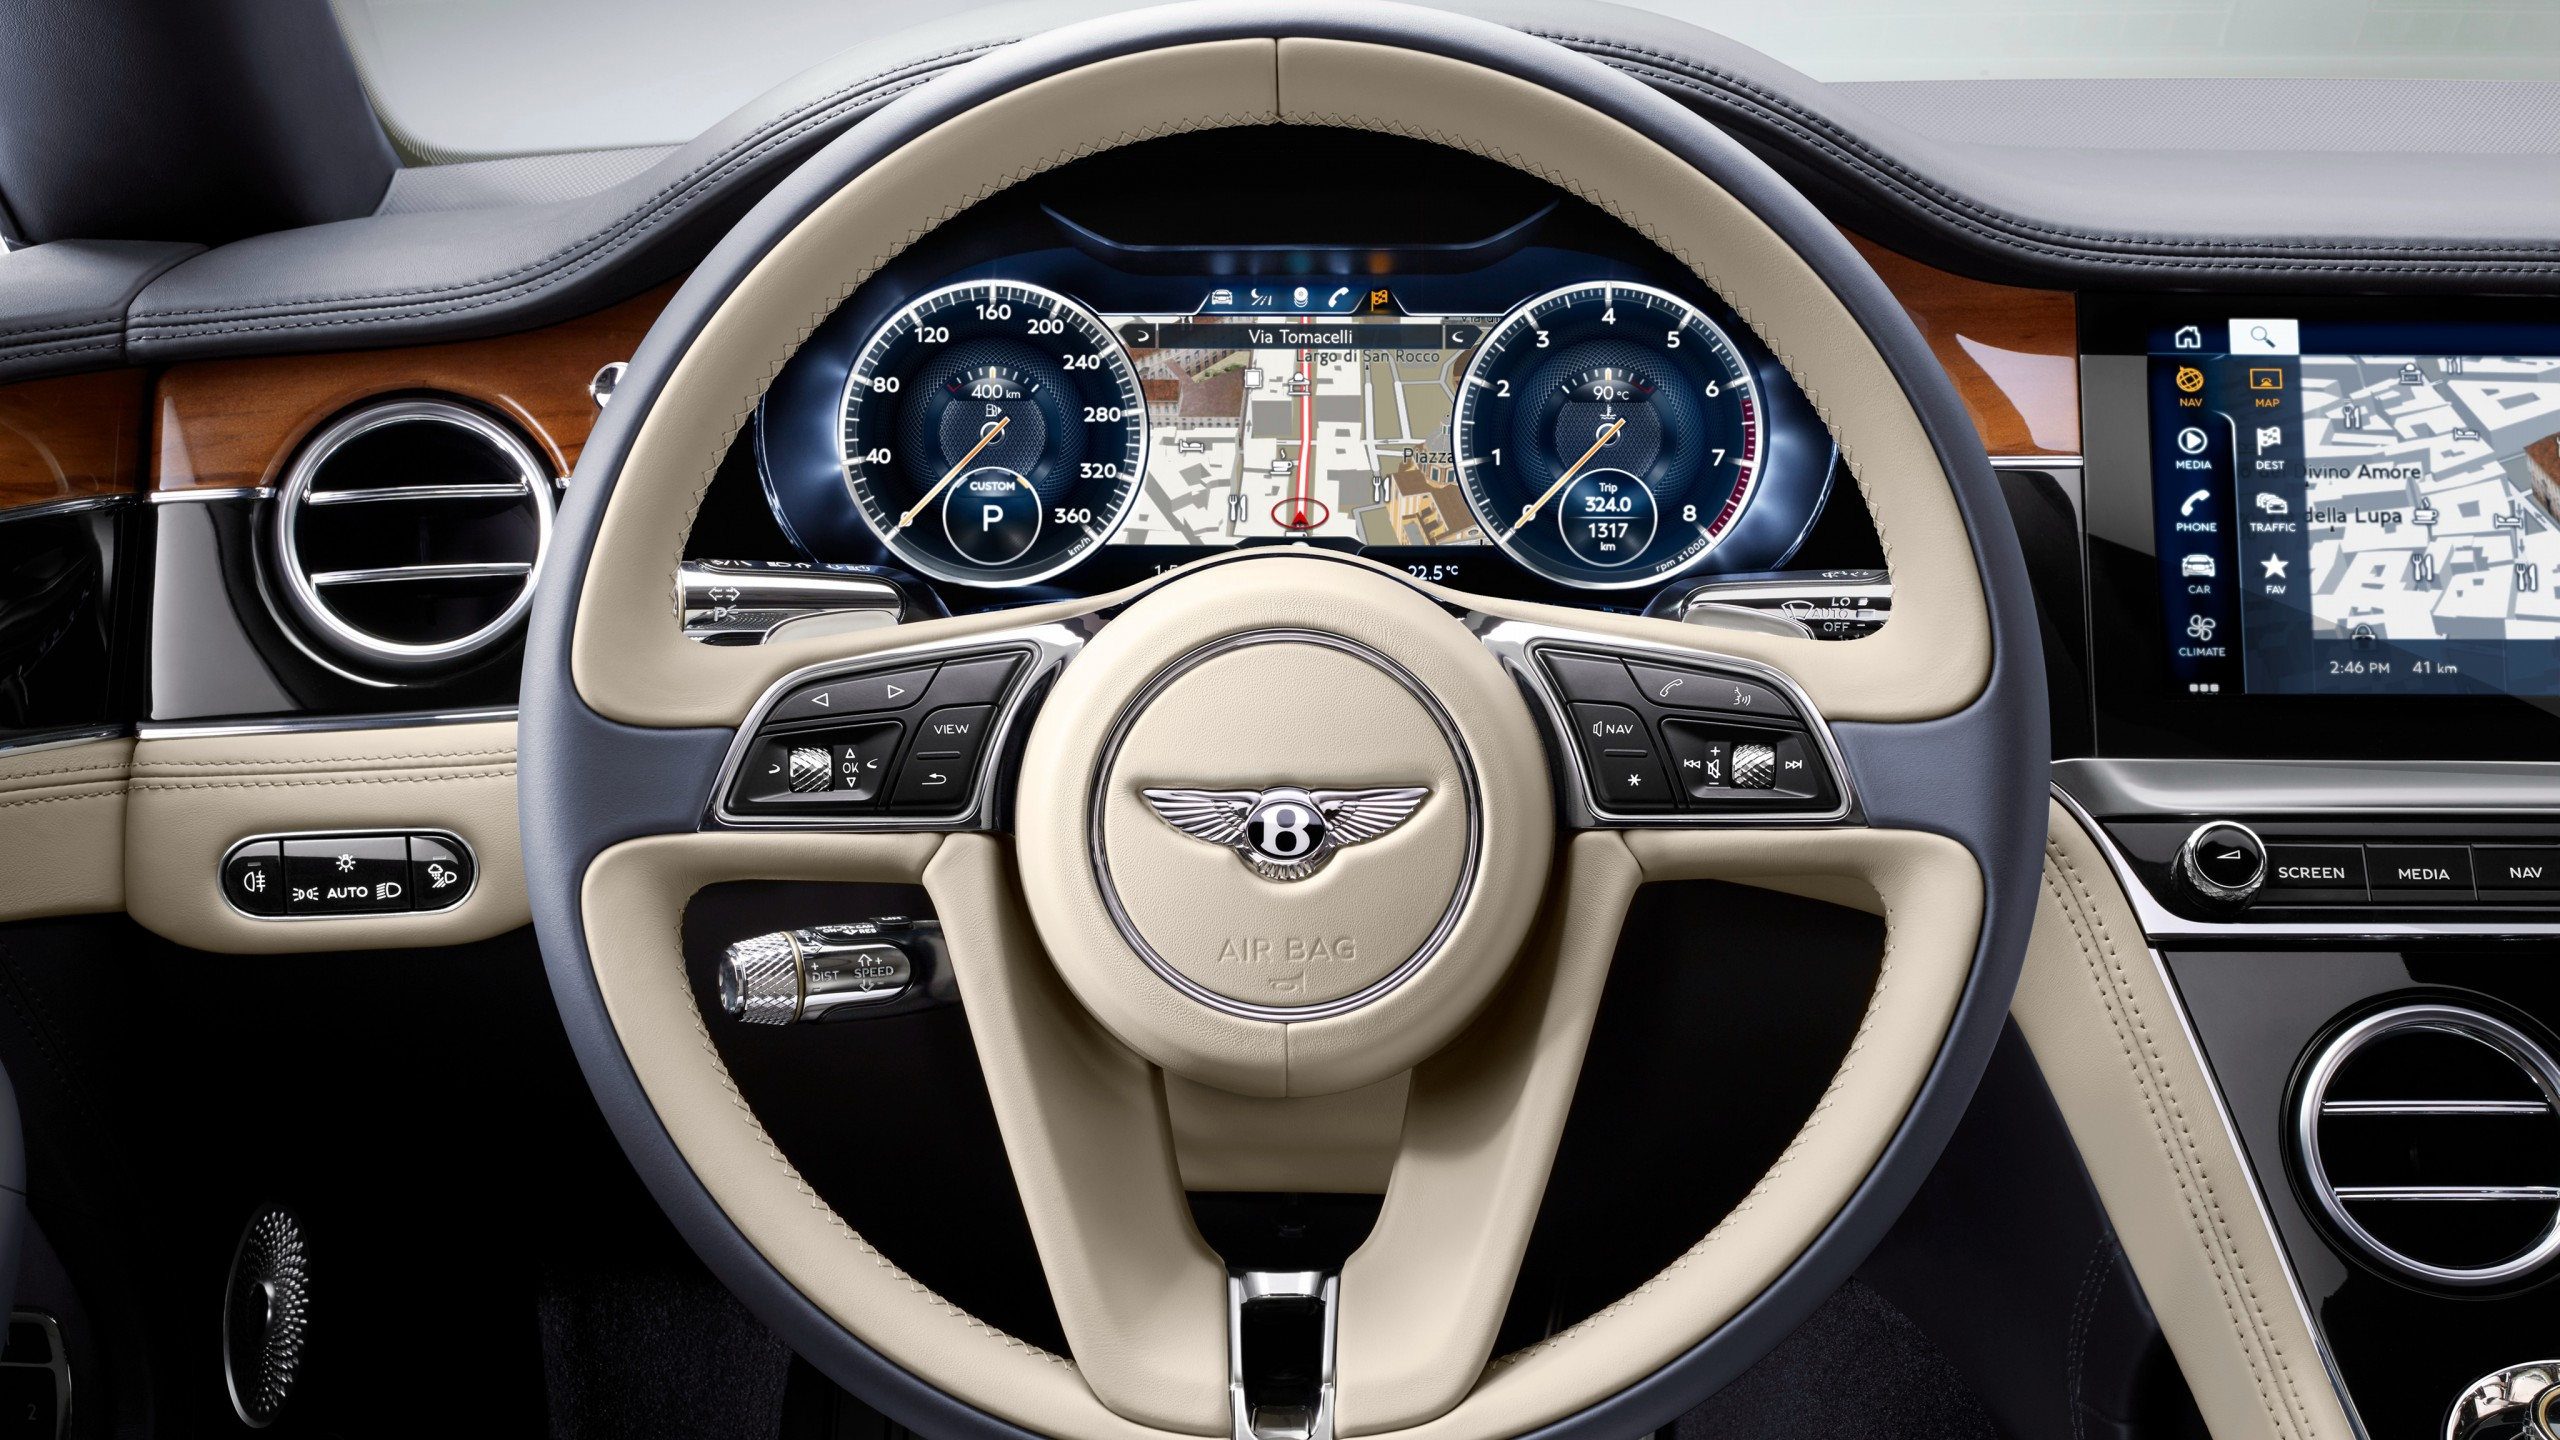 bentley continental gt 2017 interior wallpaper hd car wallpapers id 8434. Black Bedroom Furniture Sets. Home Design Ideas